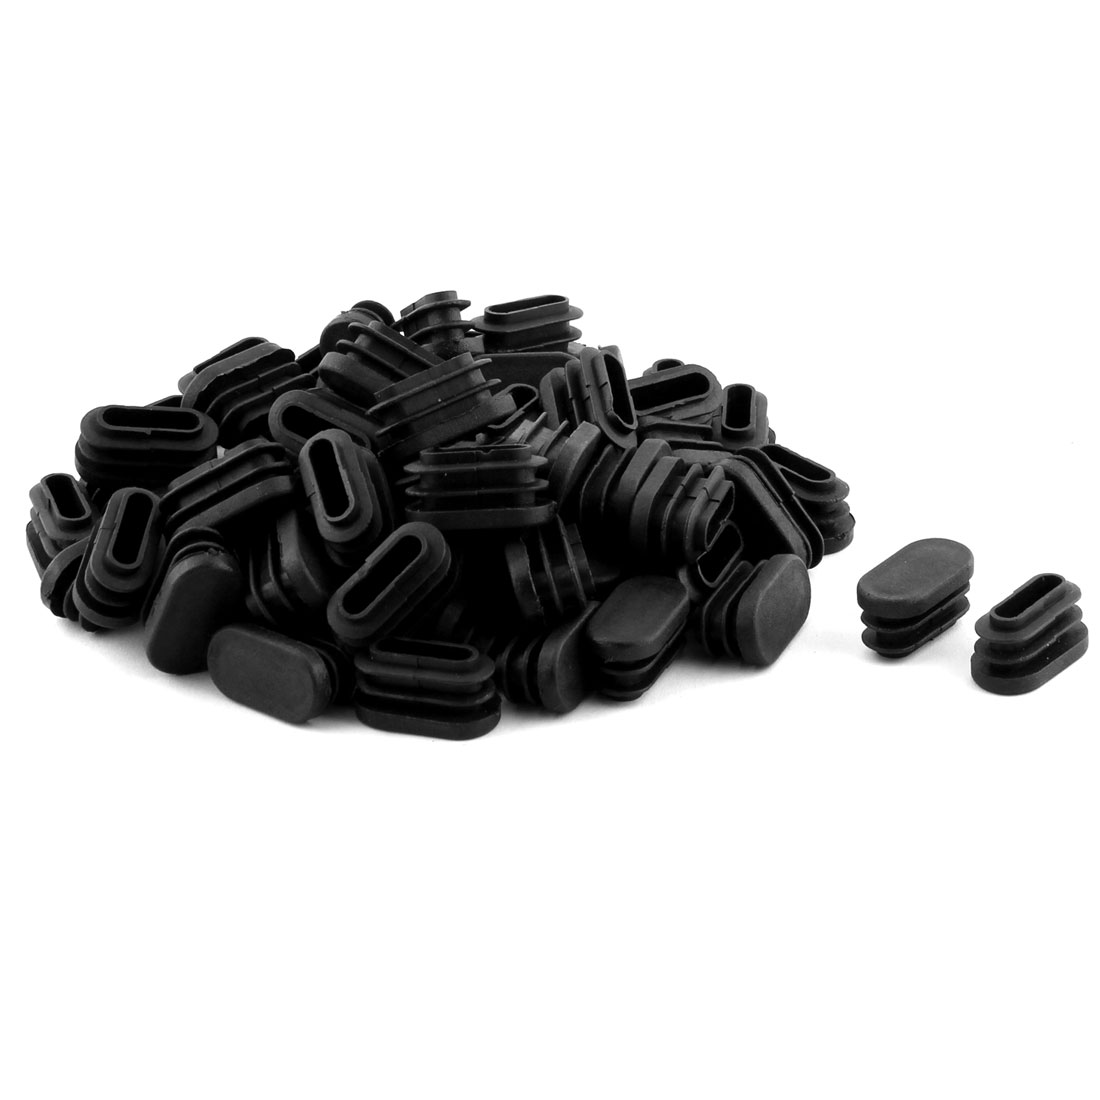 Table Chair Legs Plastic Oval Shaped Tube Pipe Inserts End Caps Black 70 PCS